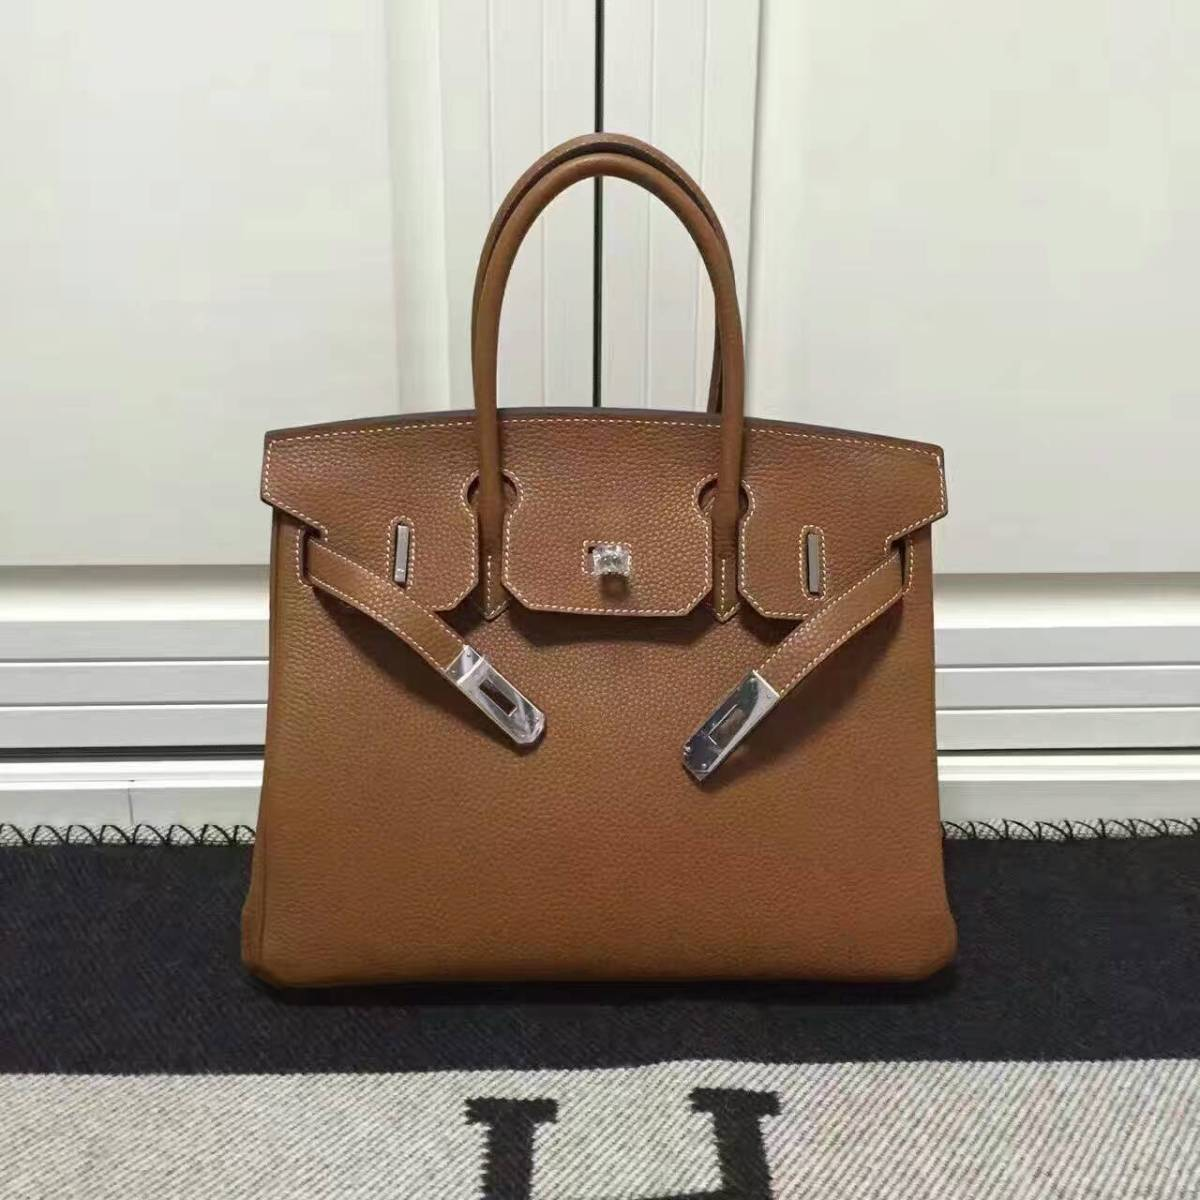 Hermes Birkin 30cm/35cm Original Togo leather bag camel tan